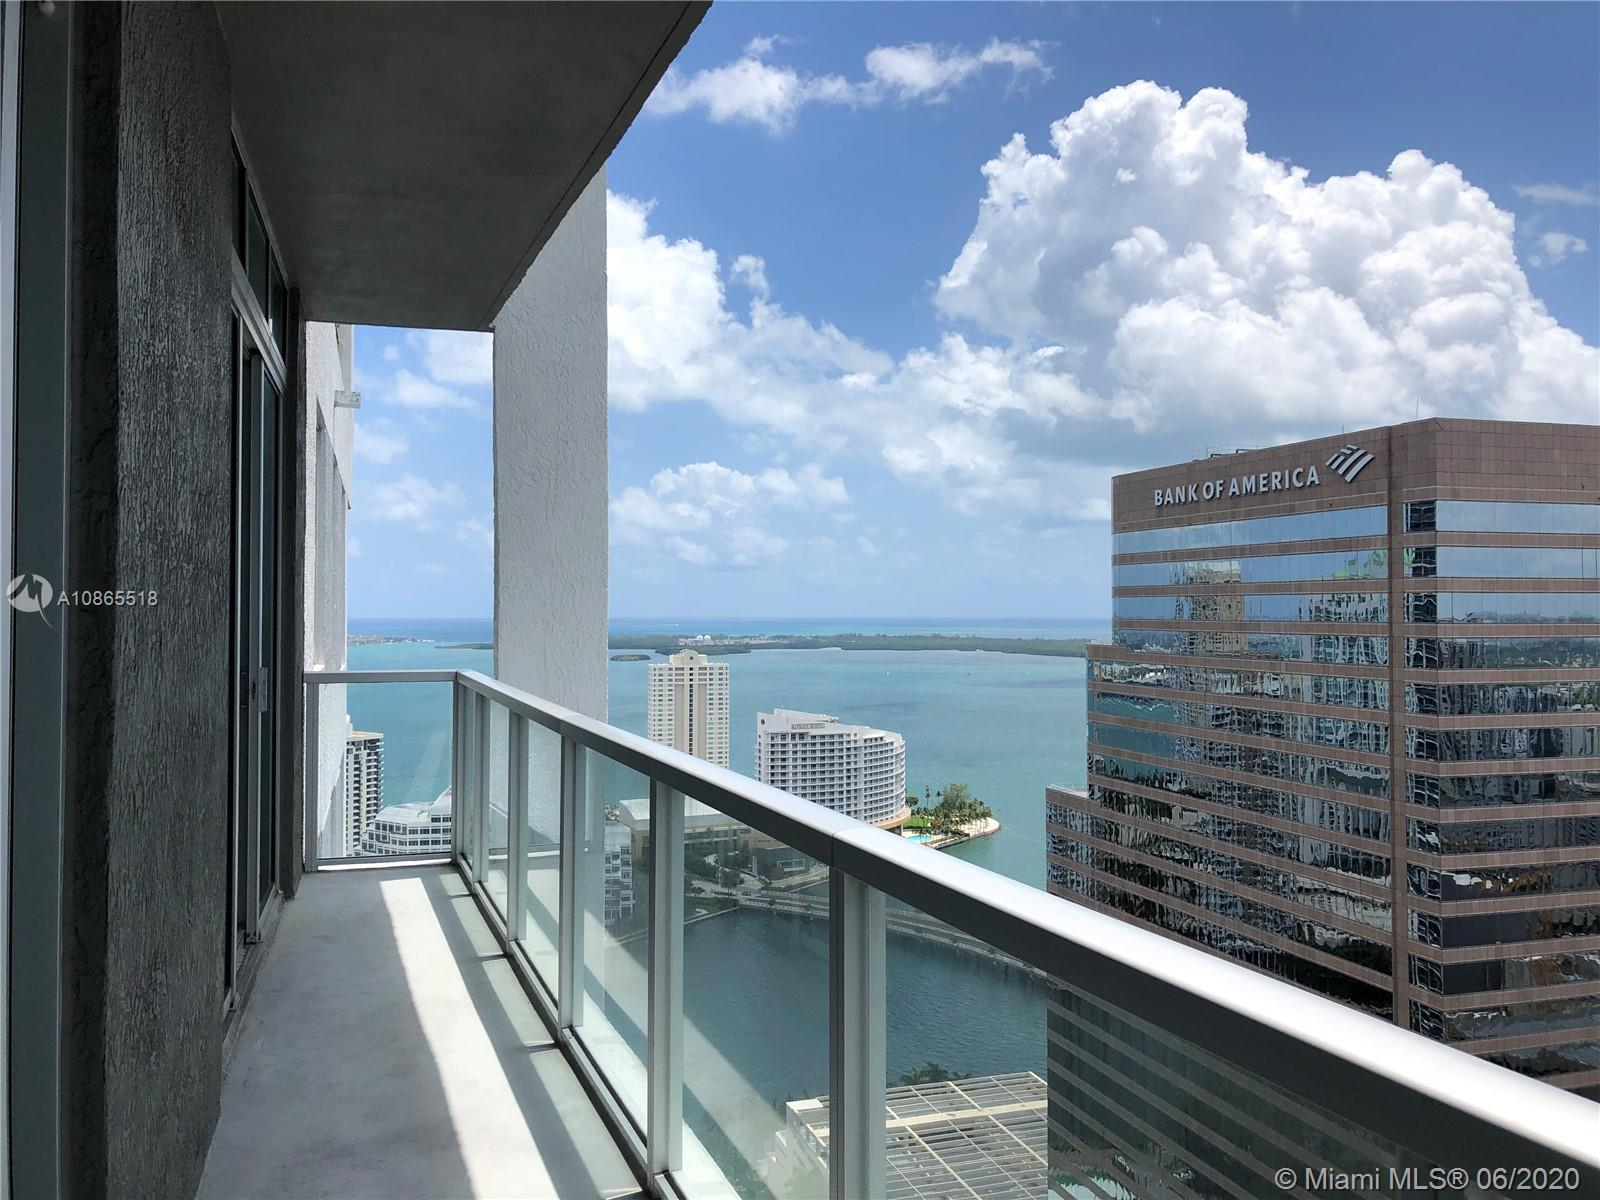 miami investment bank